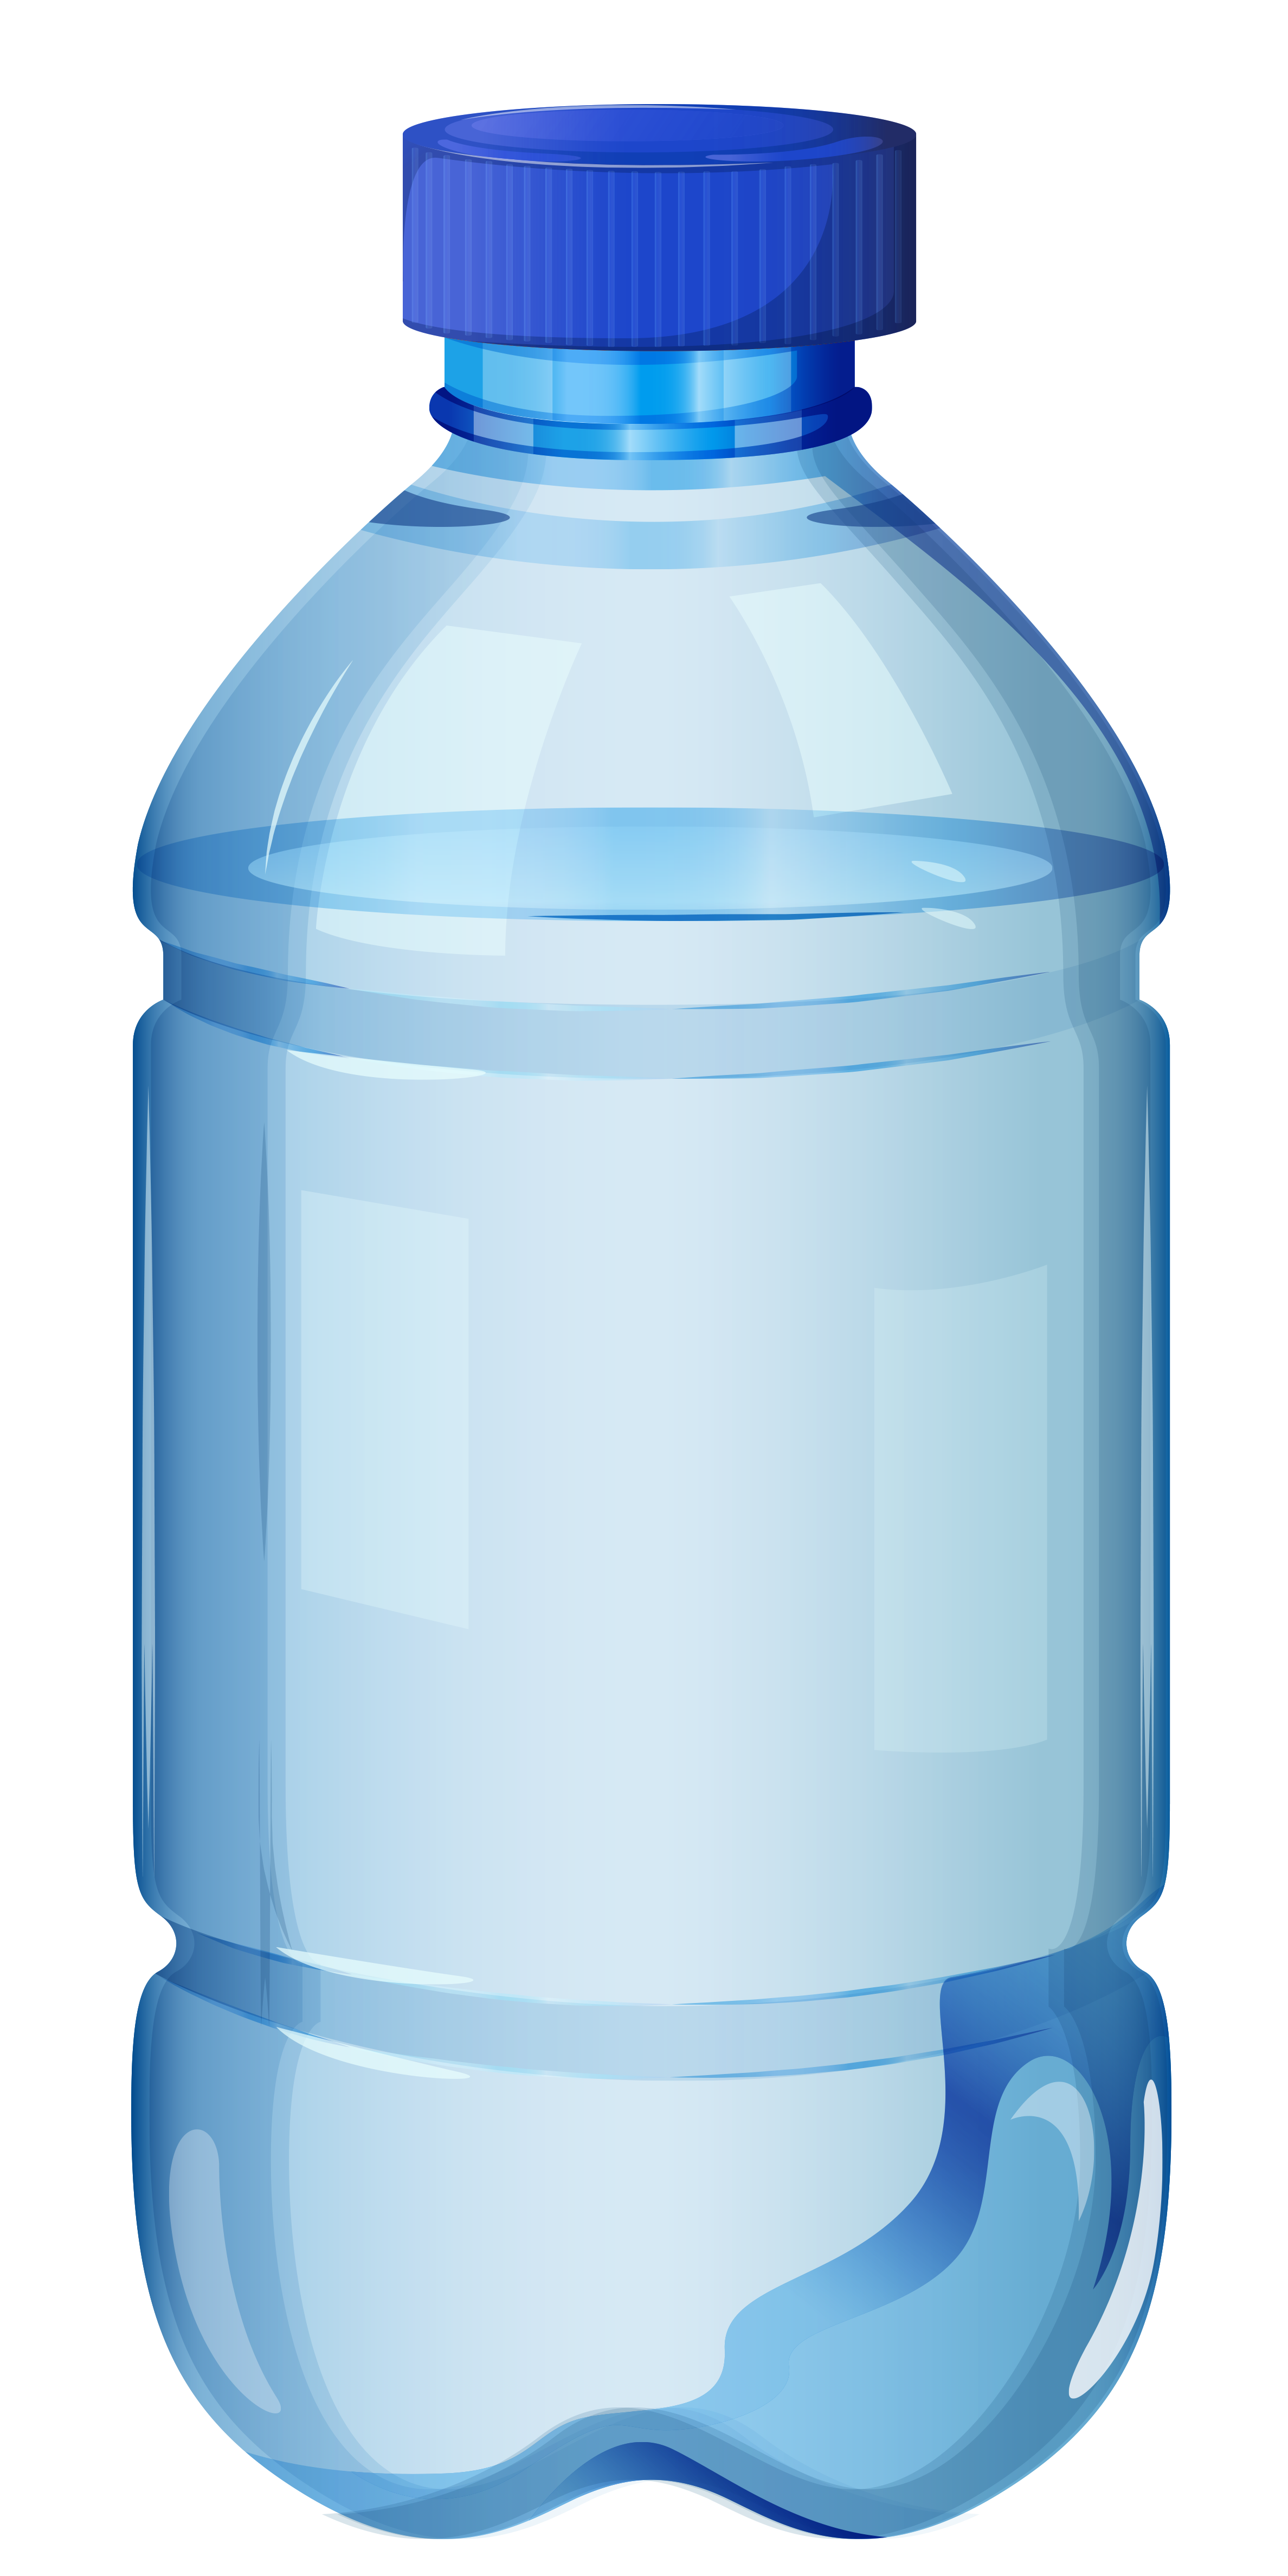 Bottle clipart #9, Download drawings